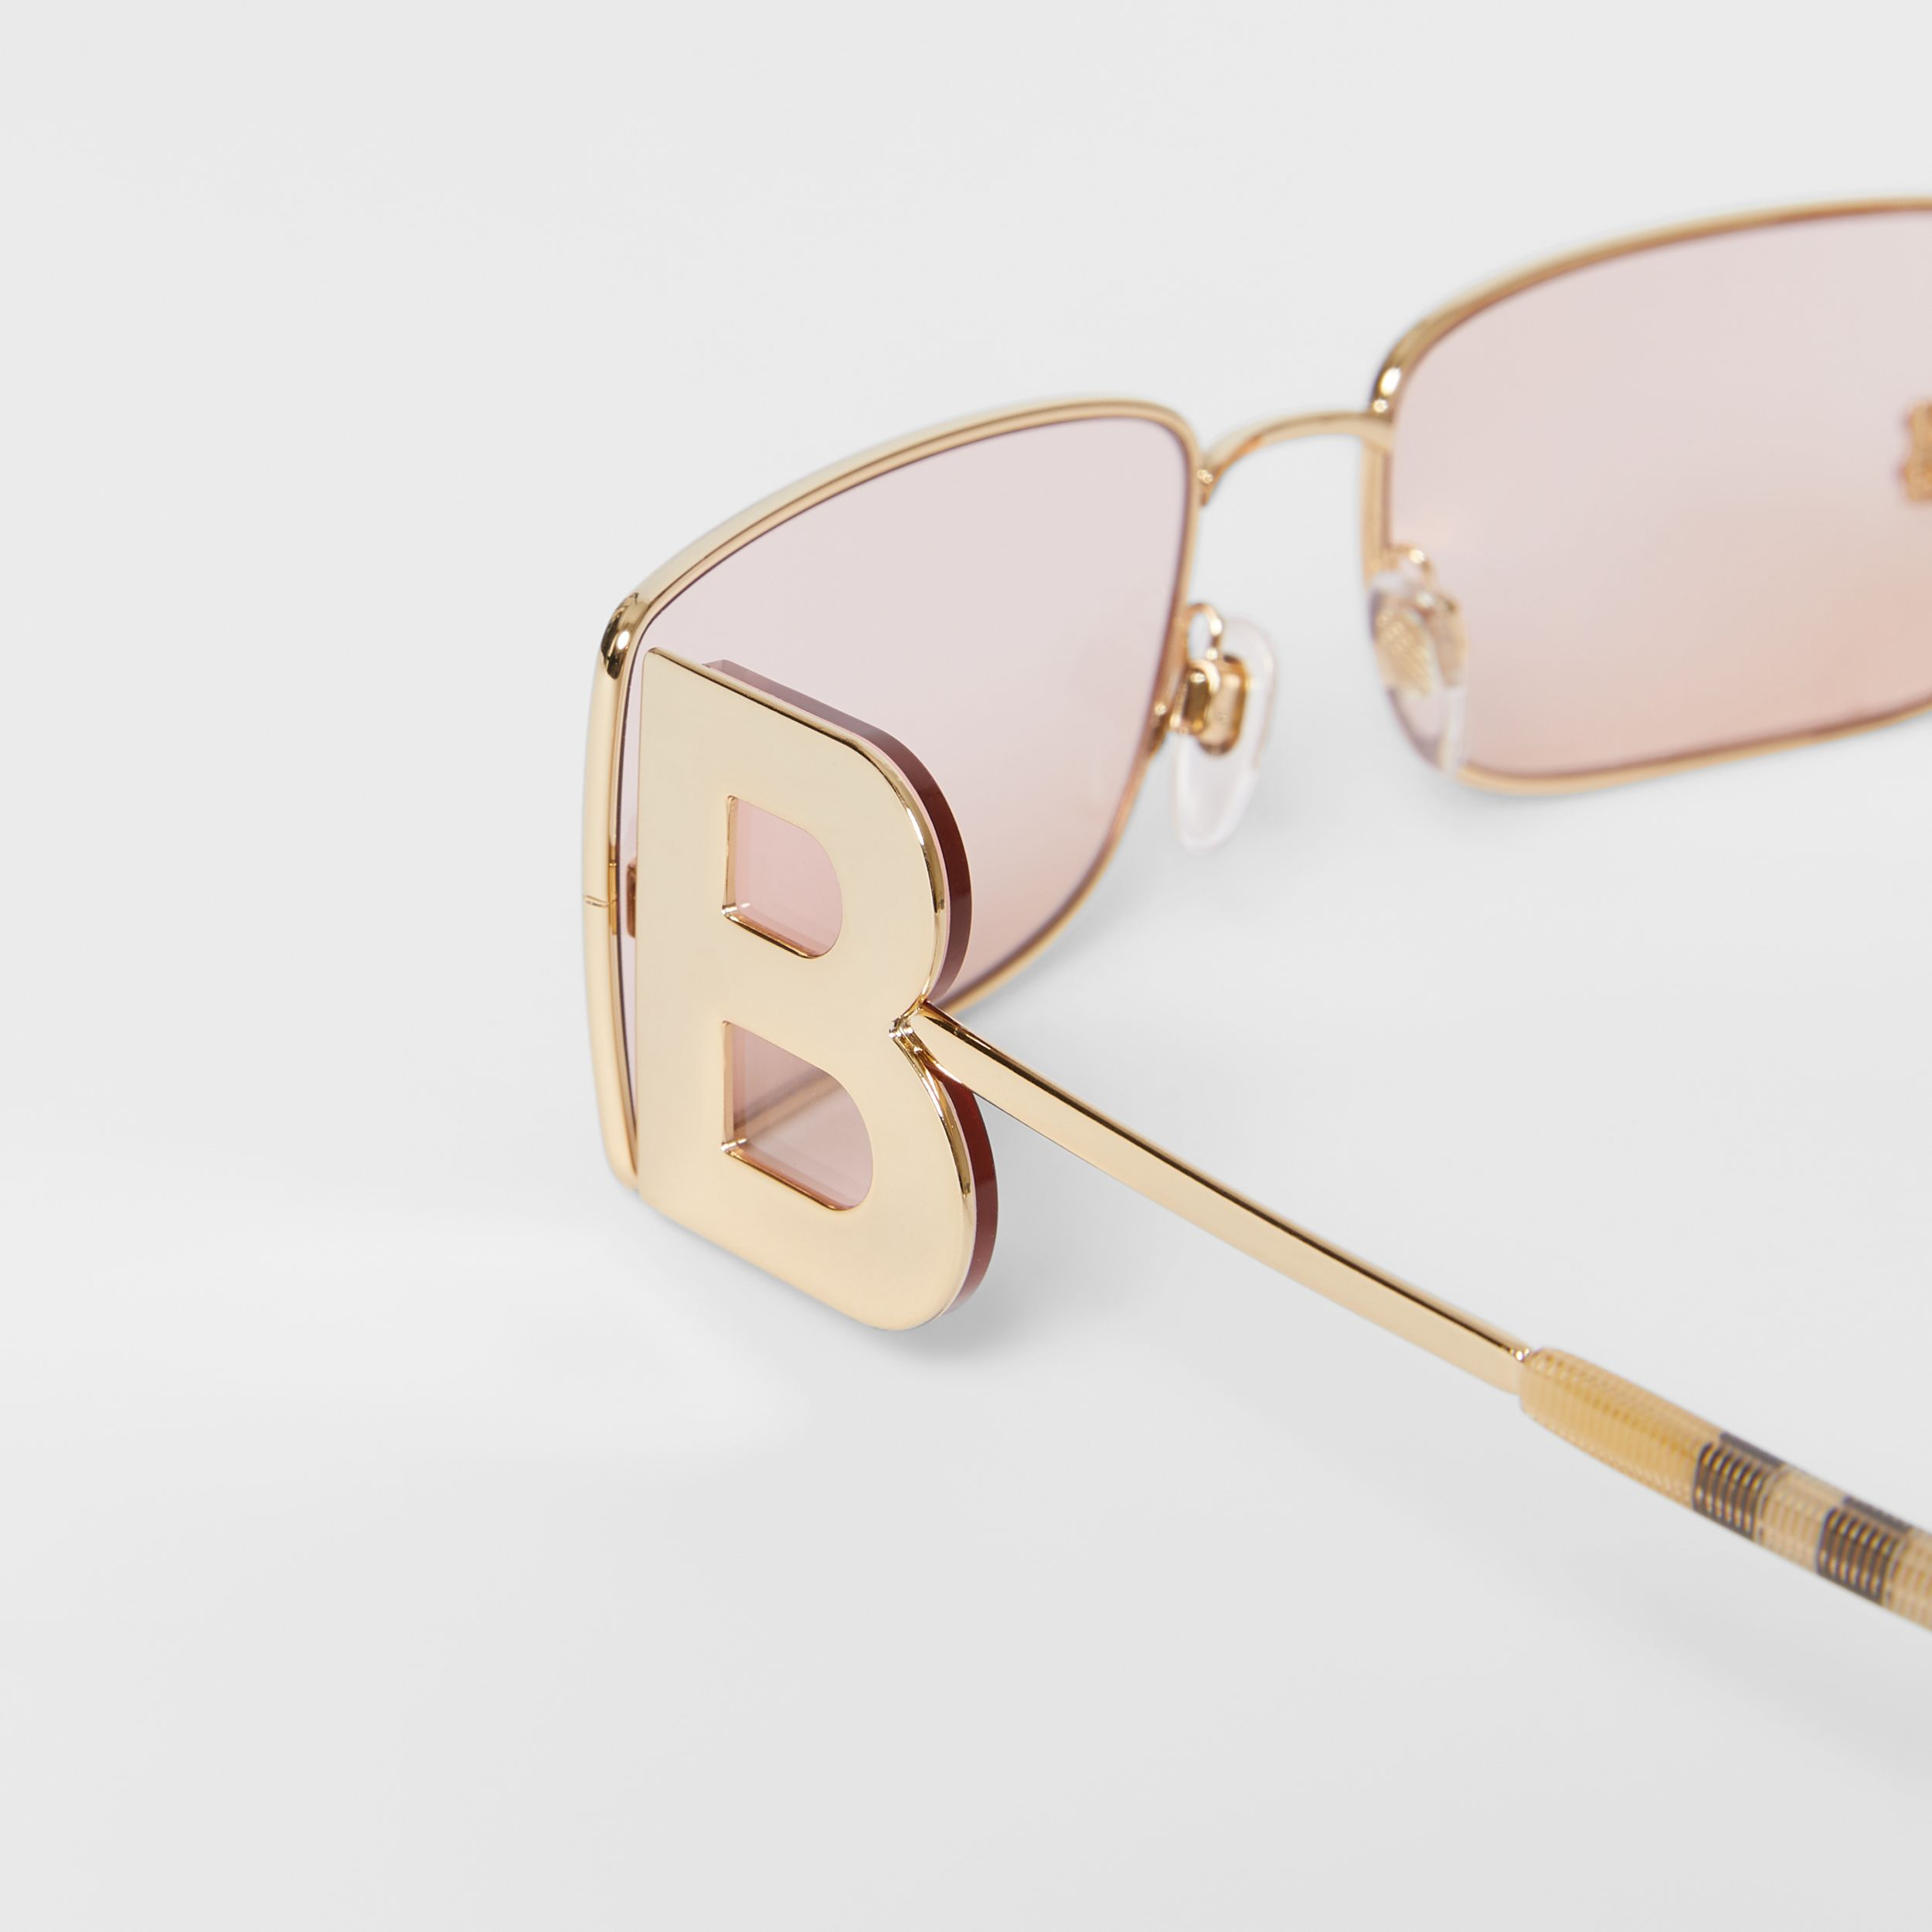 'B' Lens Detail Rectangular Frame Sunglasses in Gold | Burberry - 2